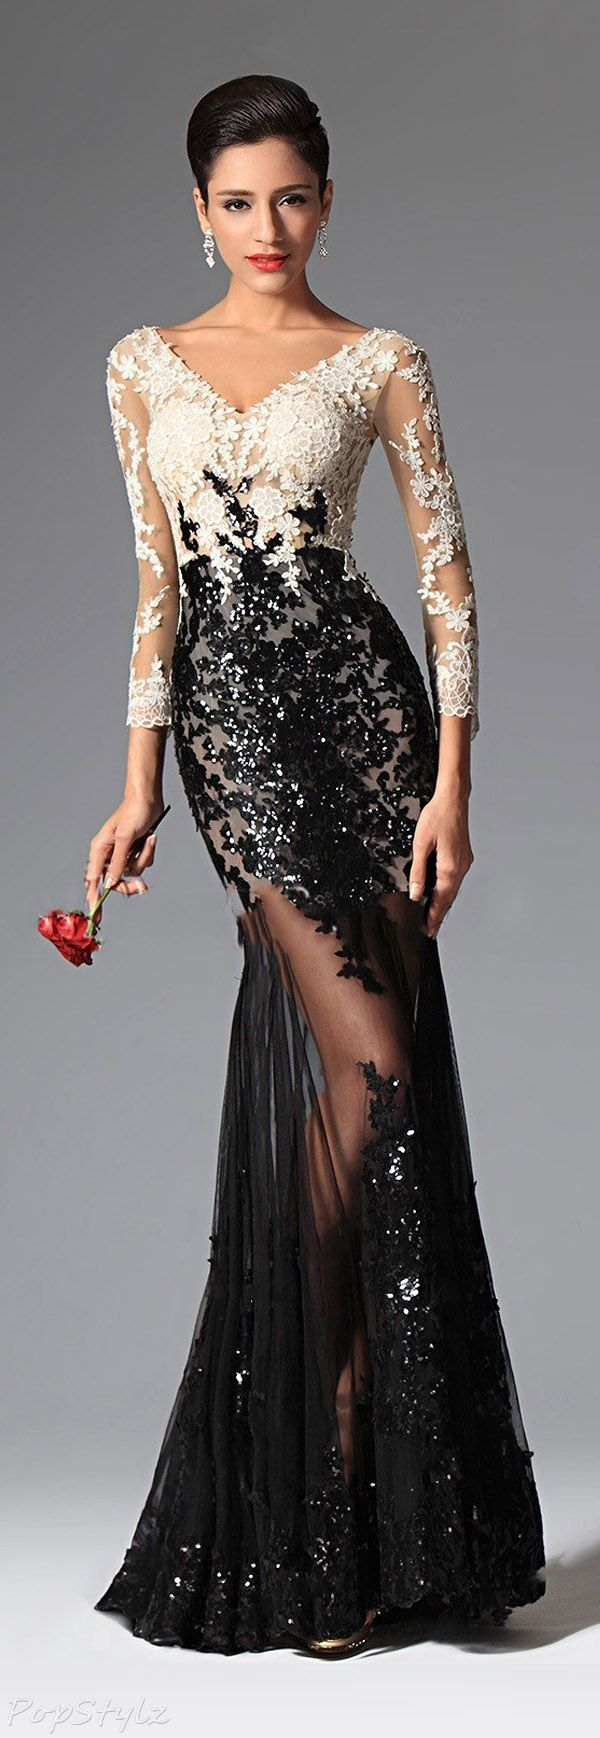 Sequin Tulle & Lace Sleeves Gown                              …